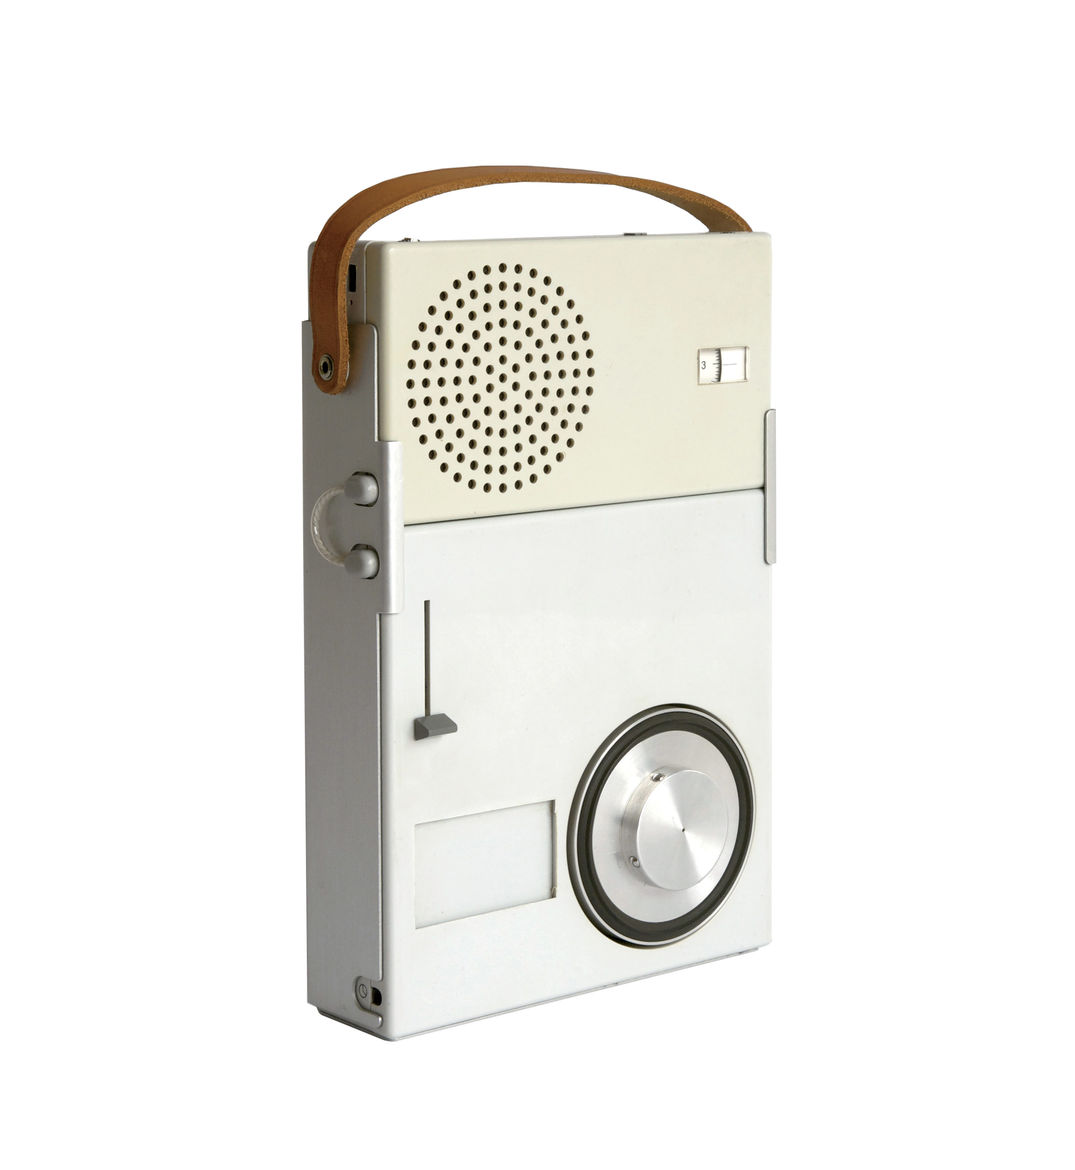 Portable Transistor Radio and Phonograph by Dieter Rams for Braun